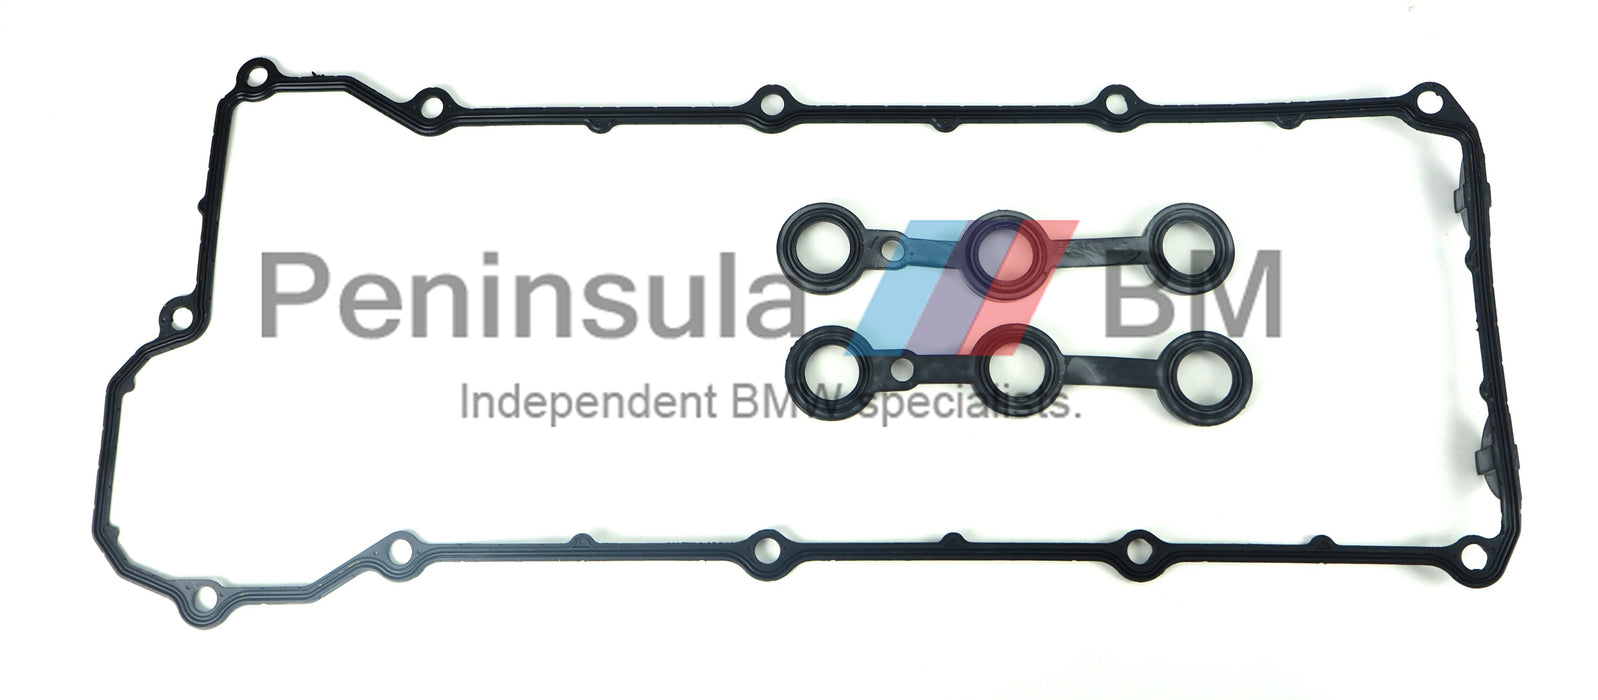 BMW Gasket Cylinder Head Cover E36 E34 M50 from 09/92 11129070531